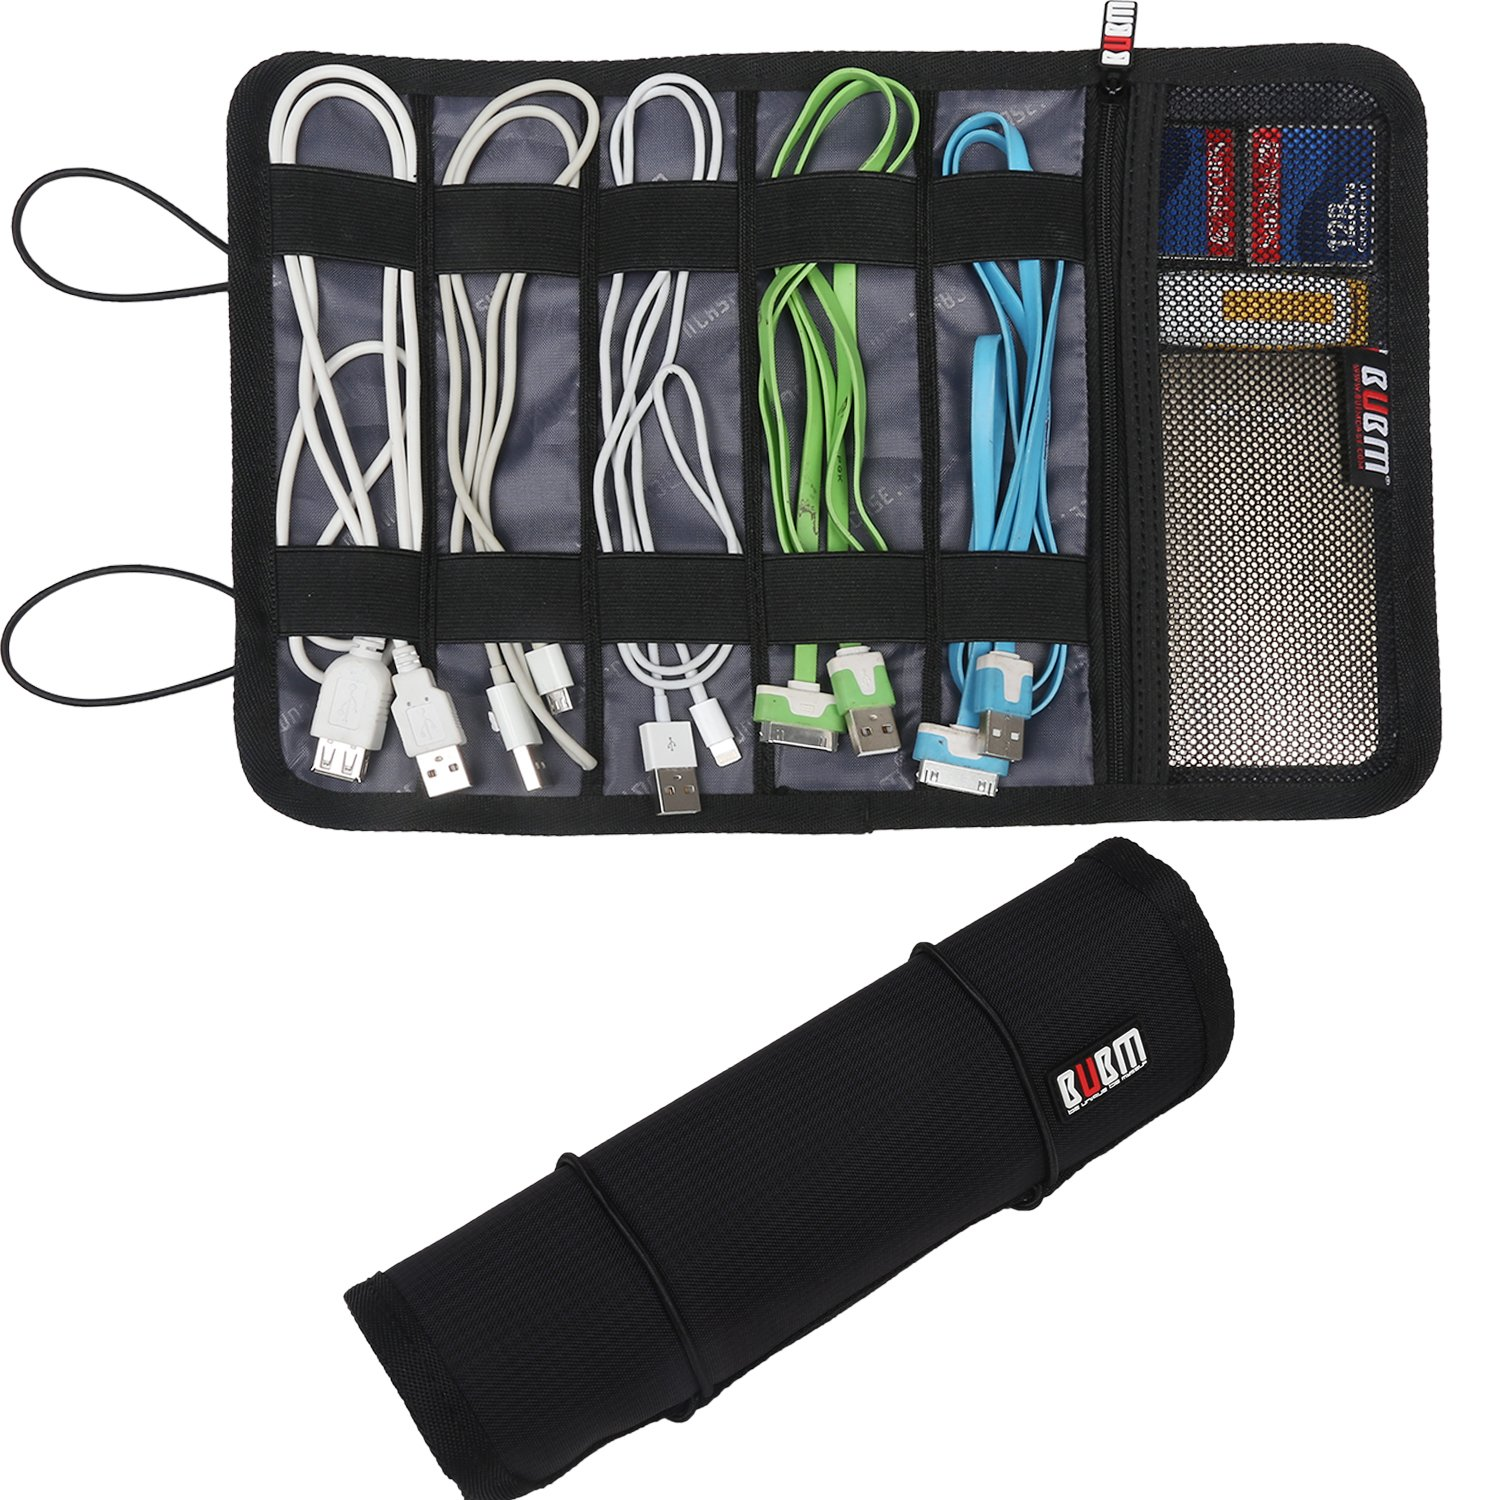 BUBM Travel Cable Organizer, Electronic Accessories Bag Roll up Management for Cord, Plug, USB Flash Drive, Earphone and